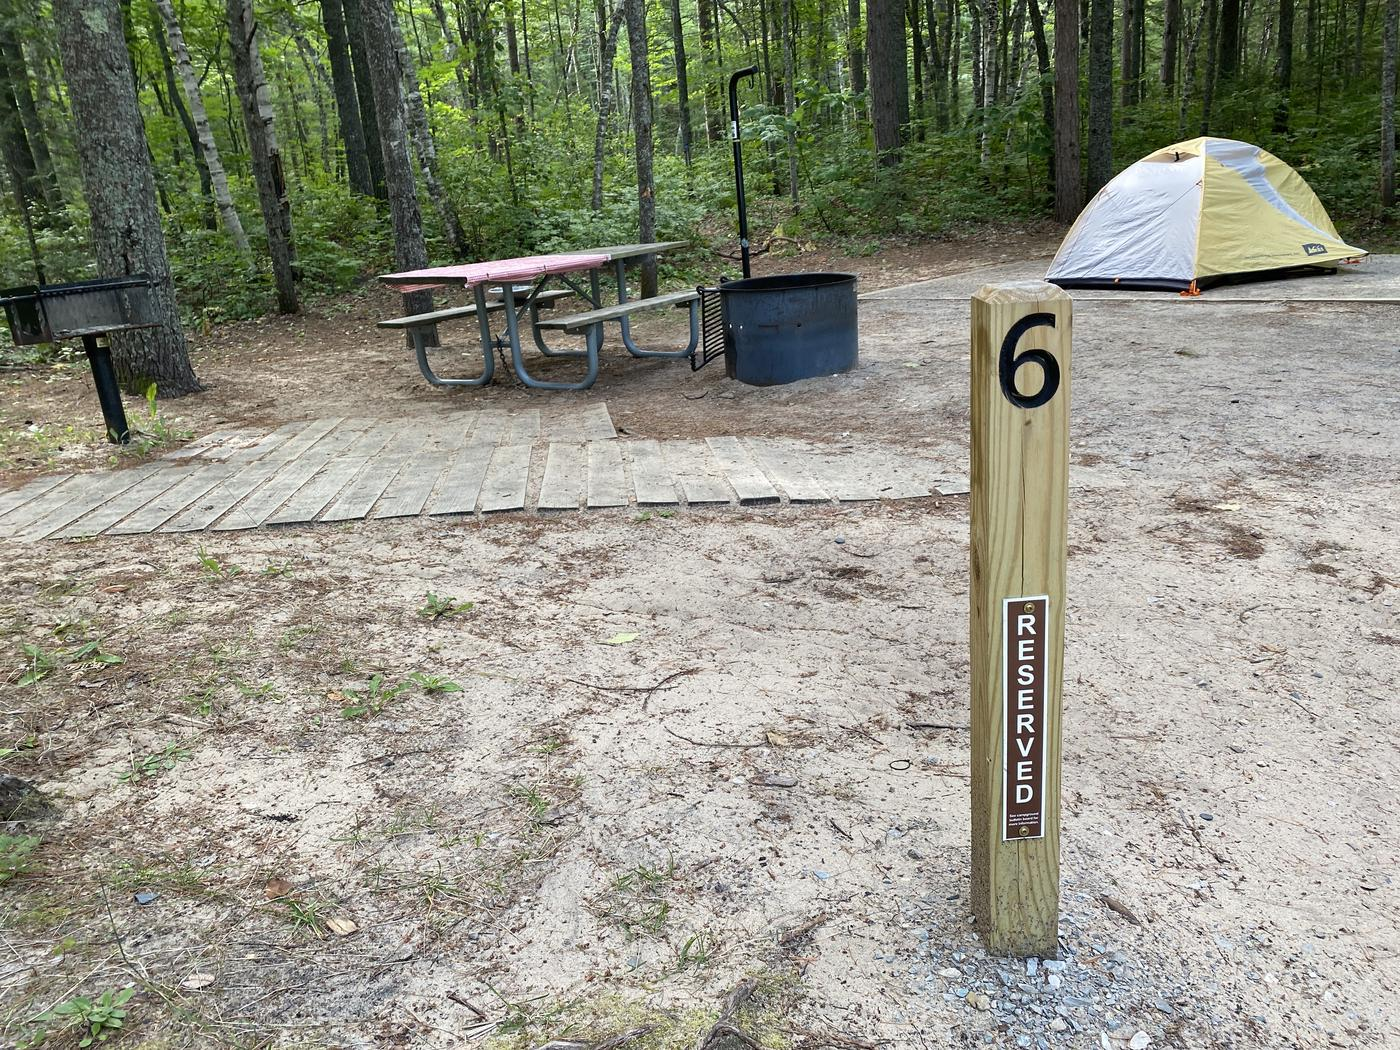 Tent pad, accessible picnic table and fire ring, lantern pole.